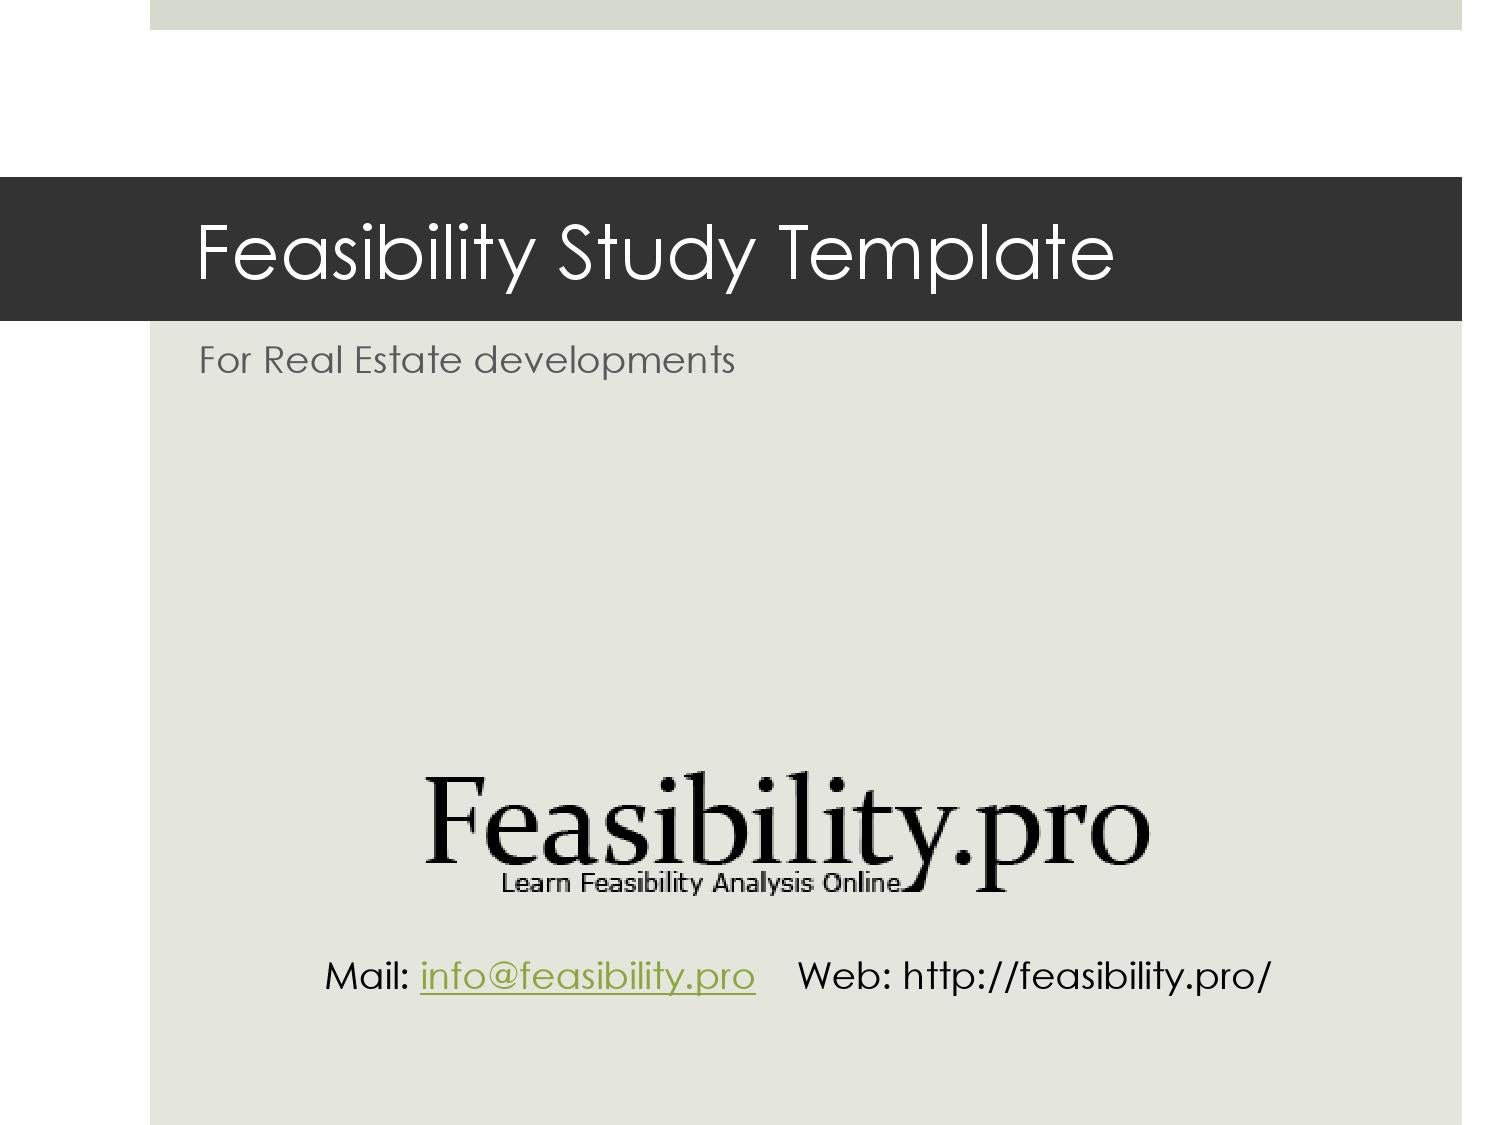 Feasibility Study Template by Feasibility Pro - issuu